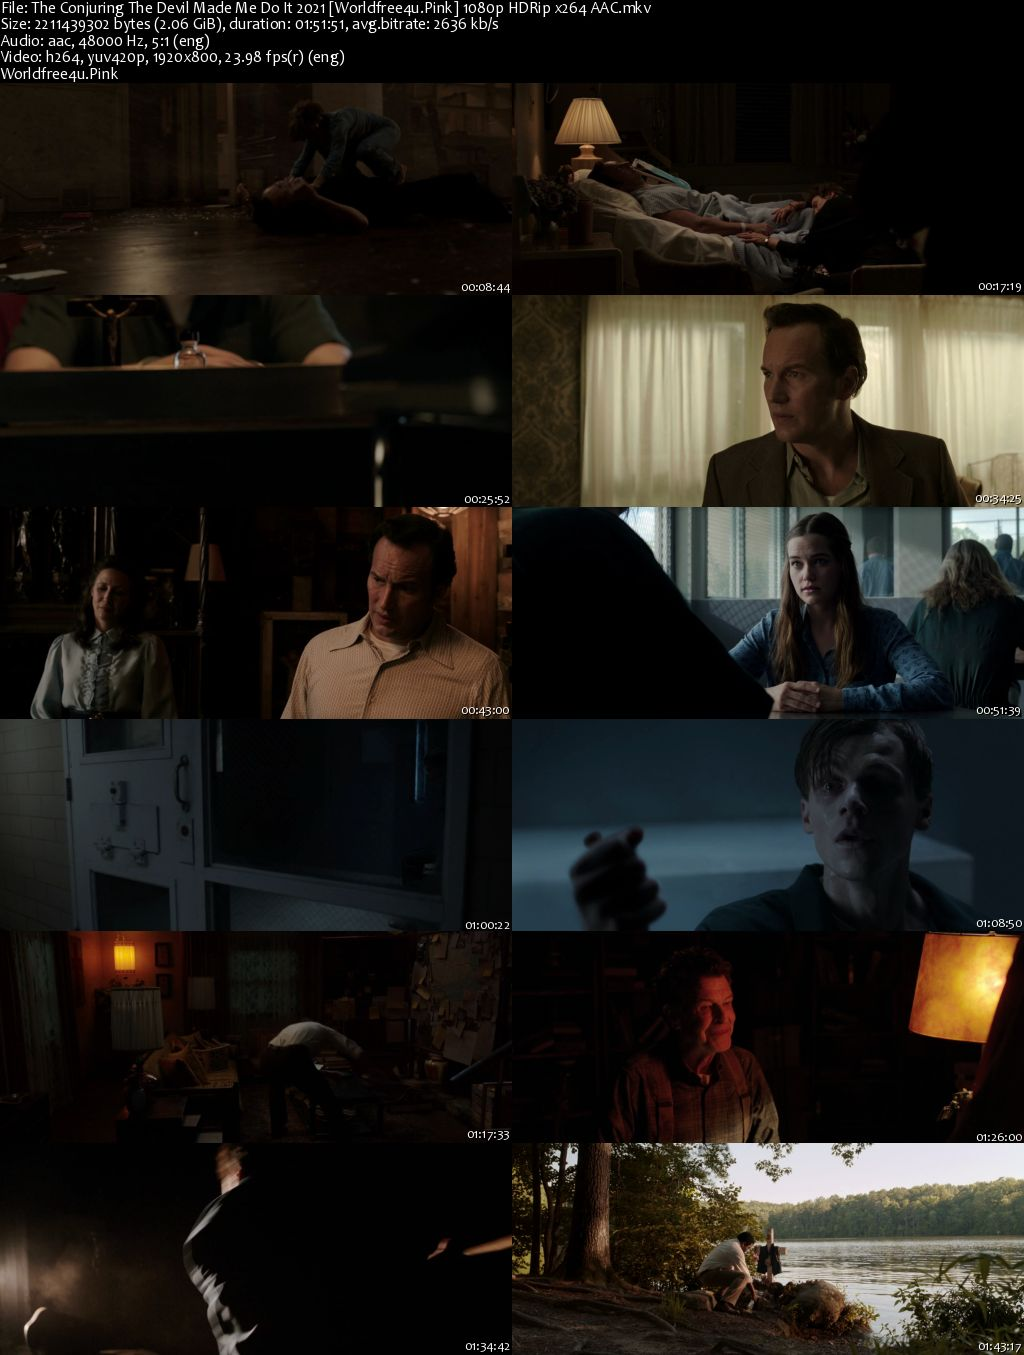 The Conjuring 3: The Devil Made Me Do It 2021 English HDRip 1080p